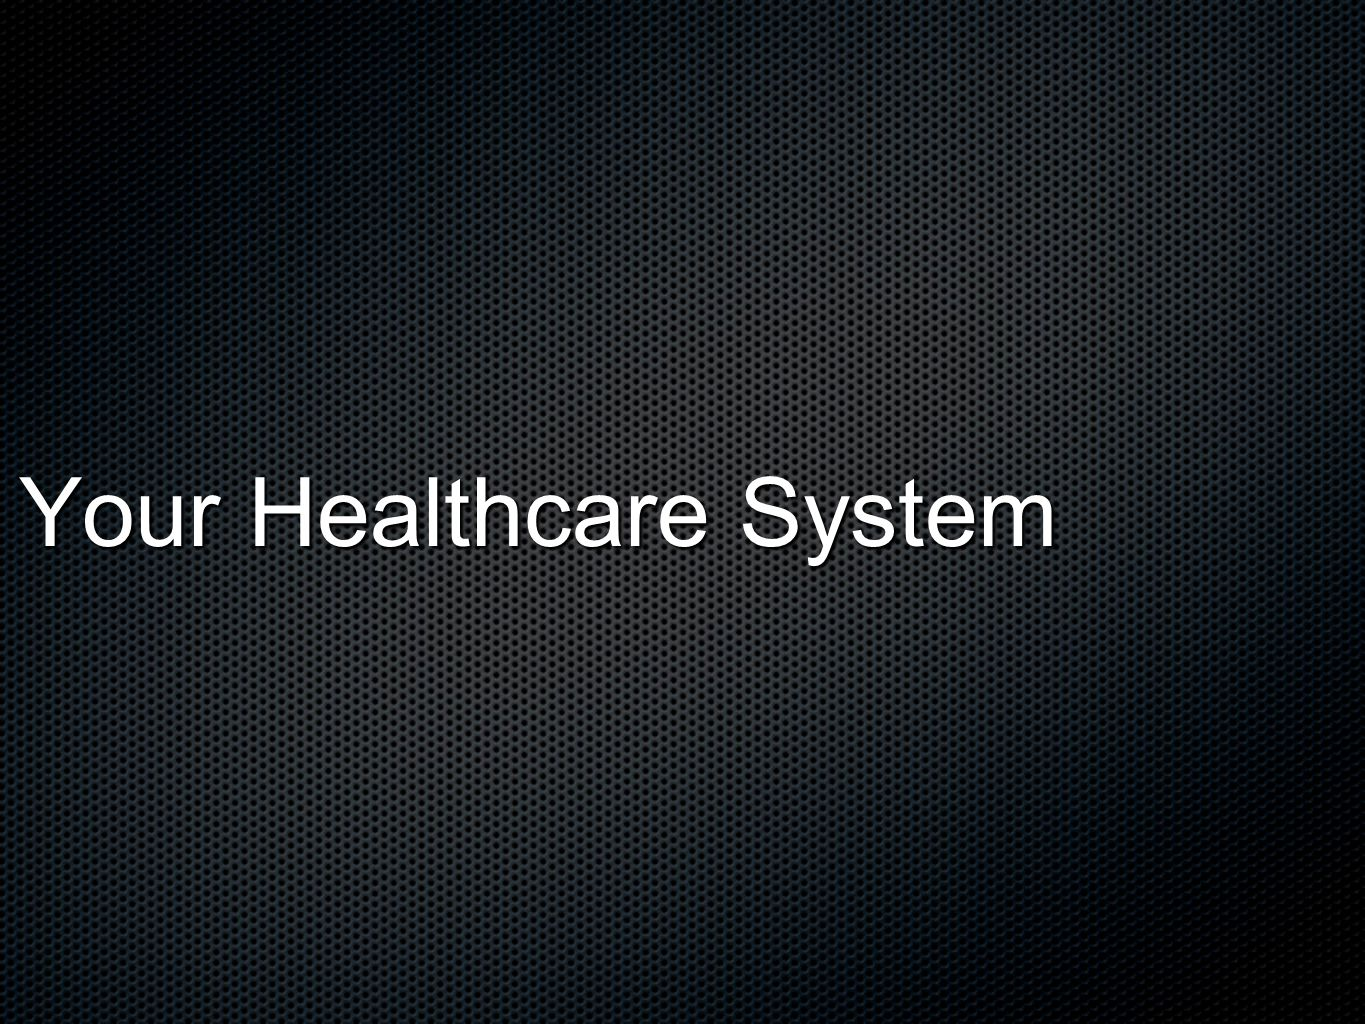 Your Healthcare System